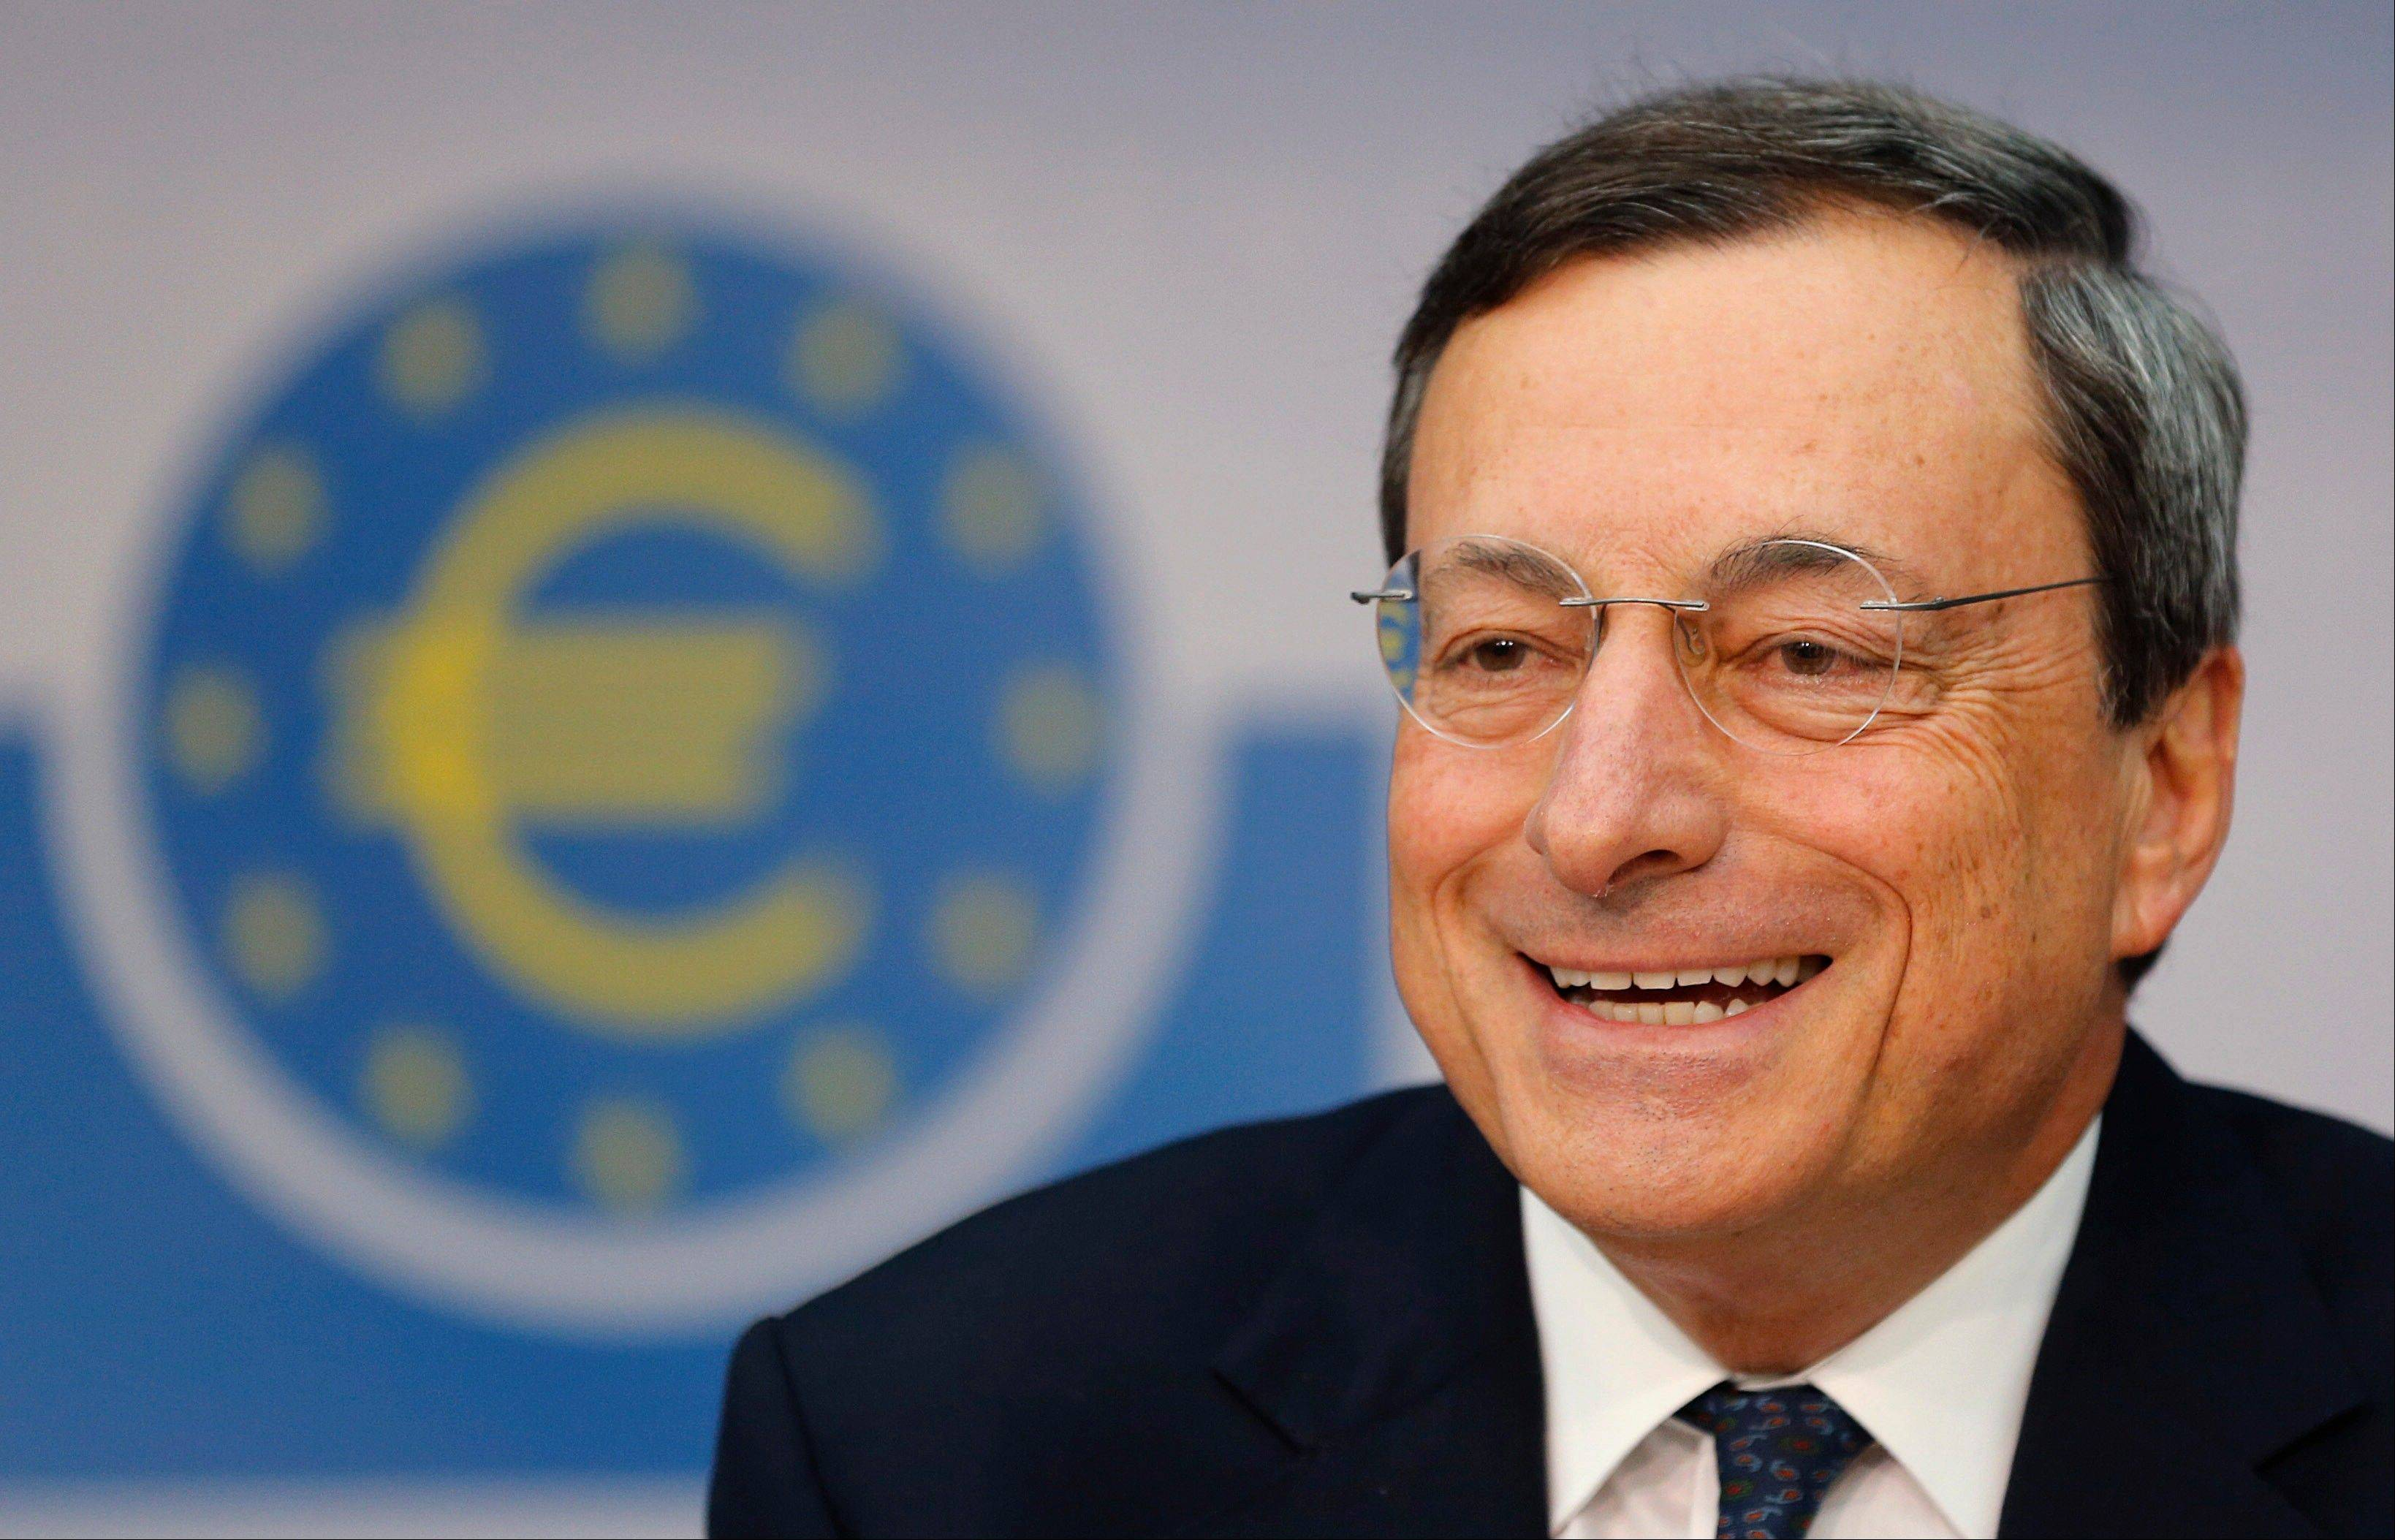 President of European Central Bank Mario Draghi listens to questions during a news conference in Frankfurt, Germany, Thursday, following a meeting of the ECB governing council on the European financial crisis.